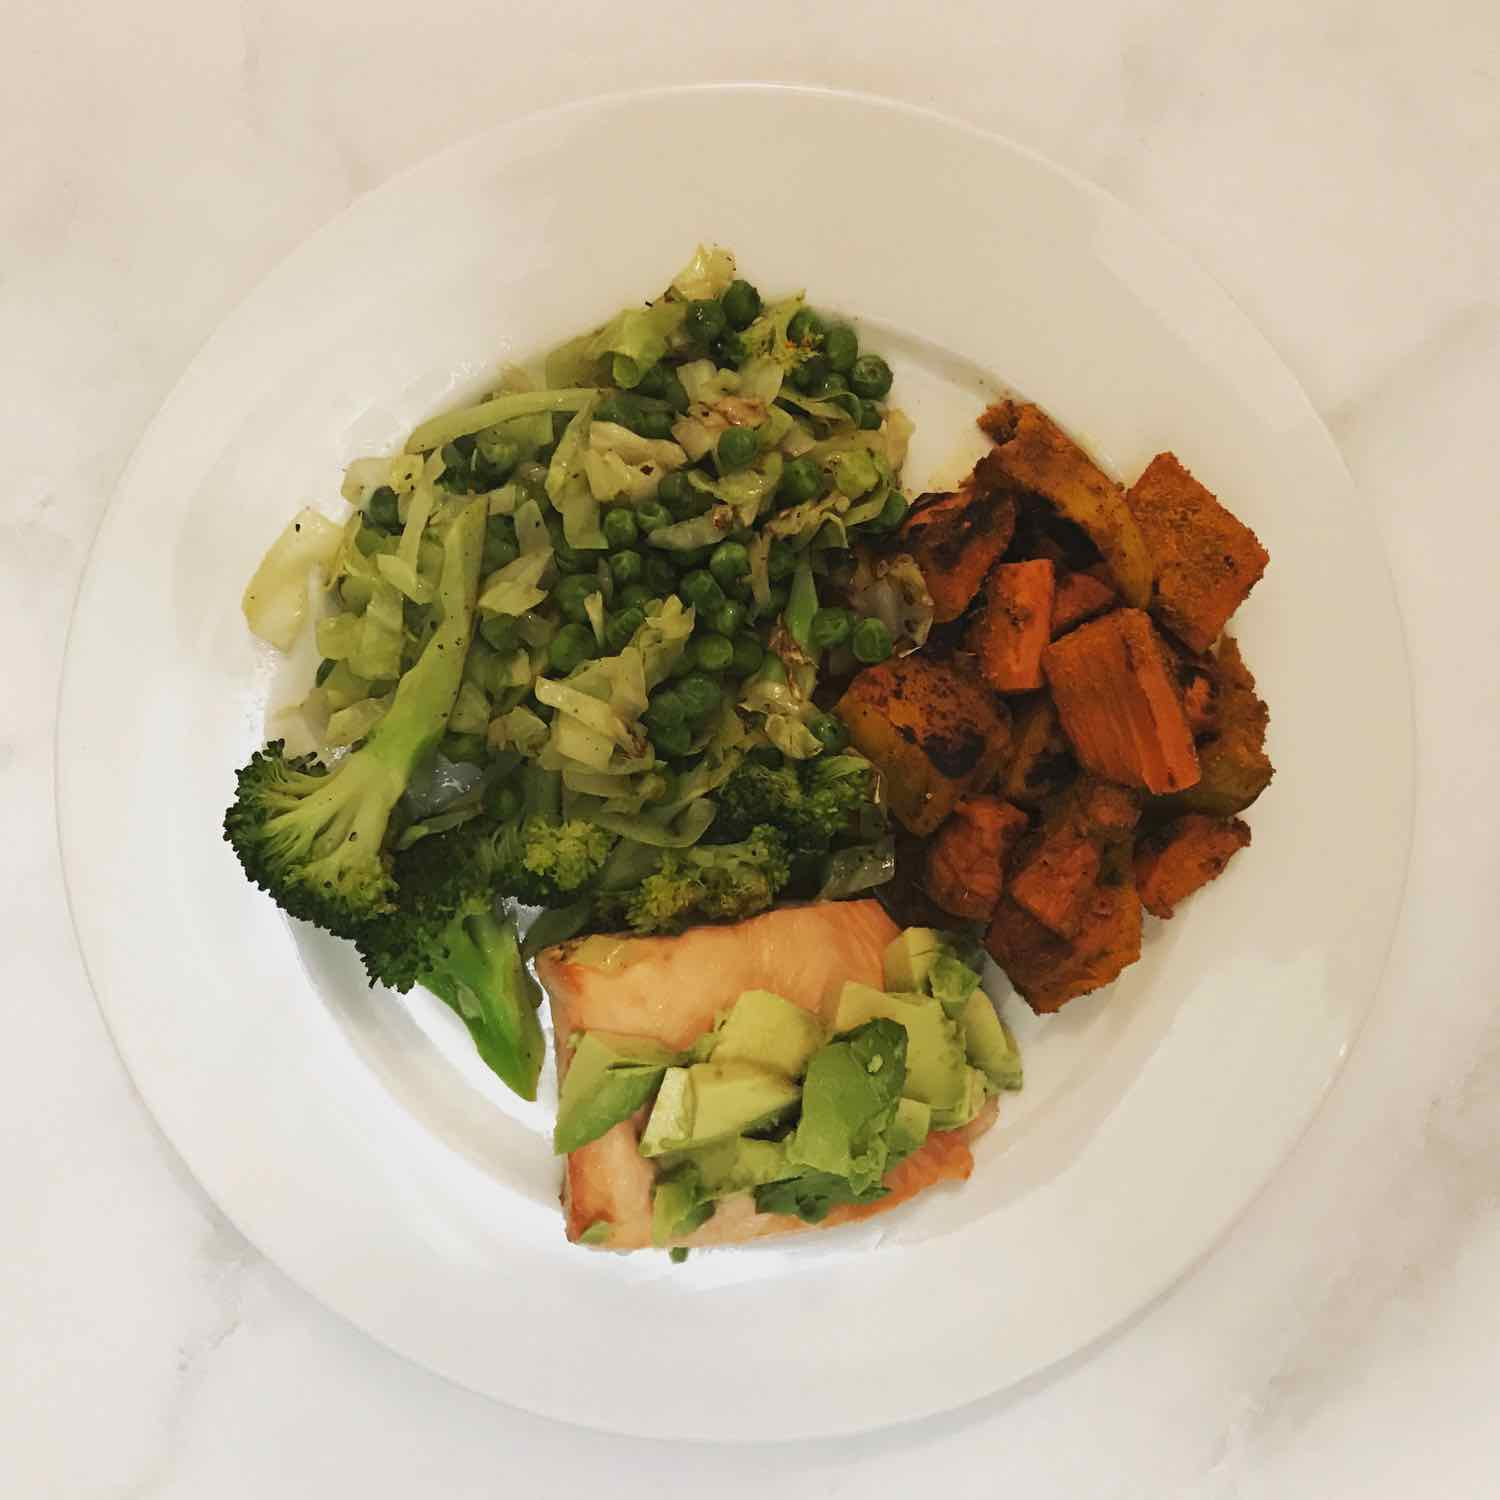 Steamed greens, Roasted vegetables & salmon topped with Avocado